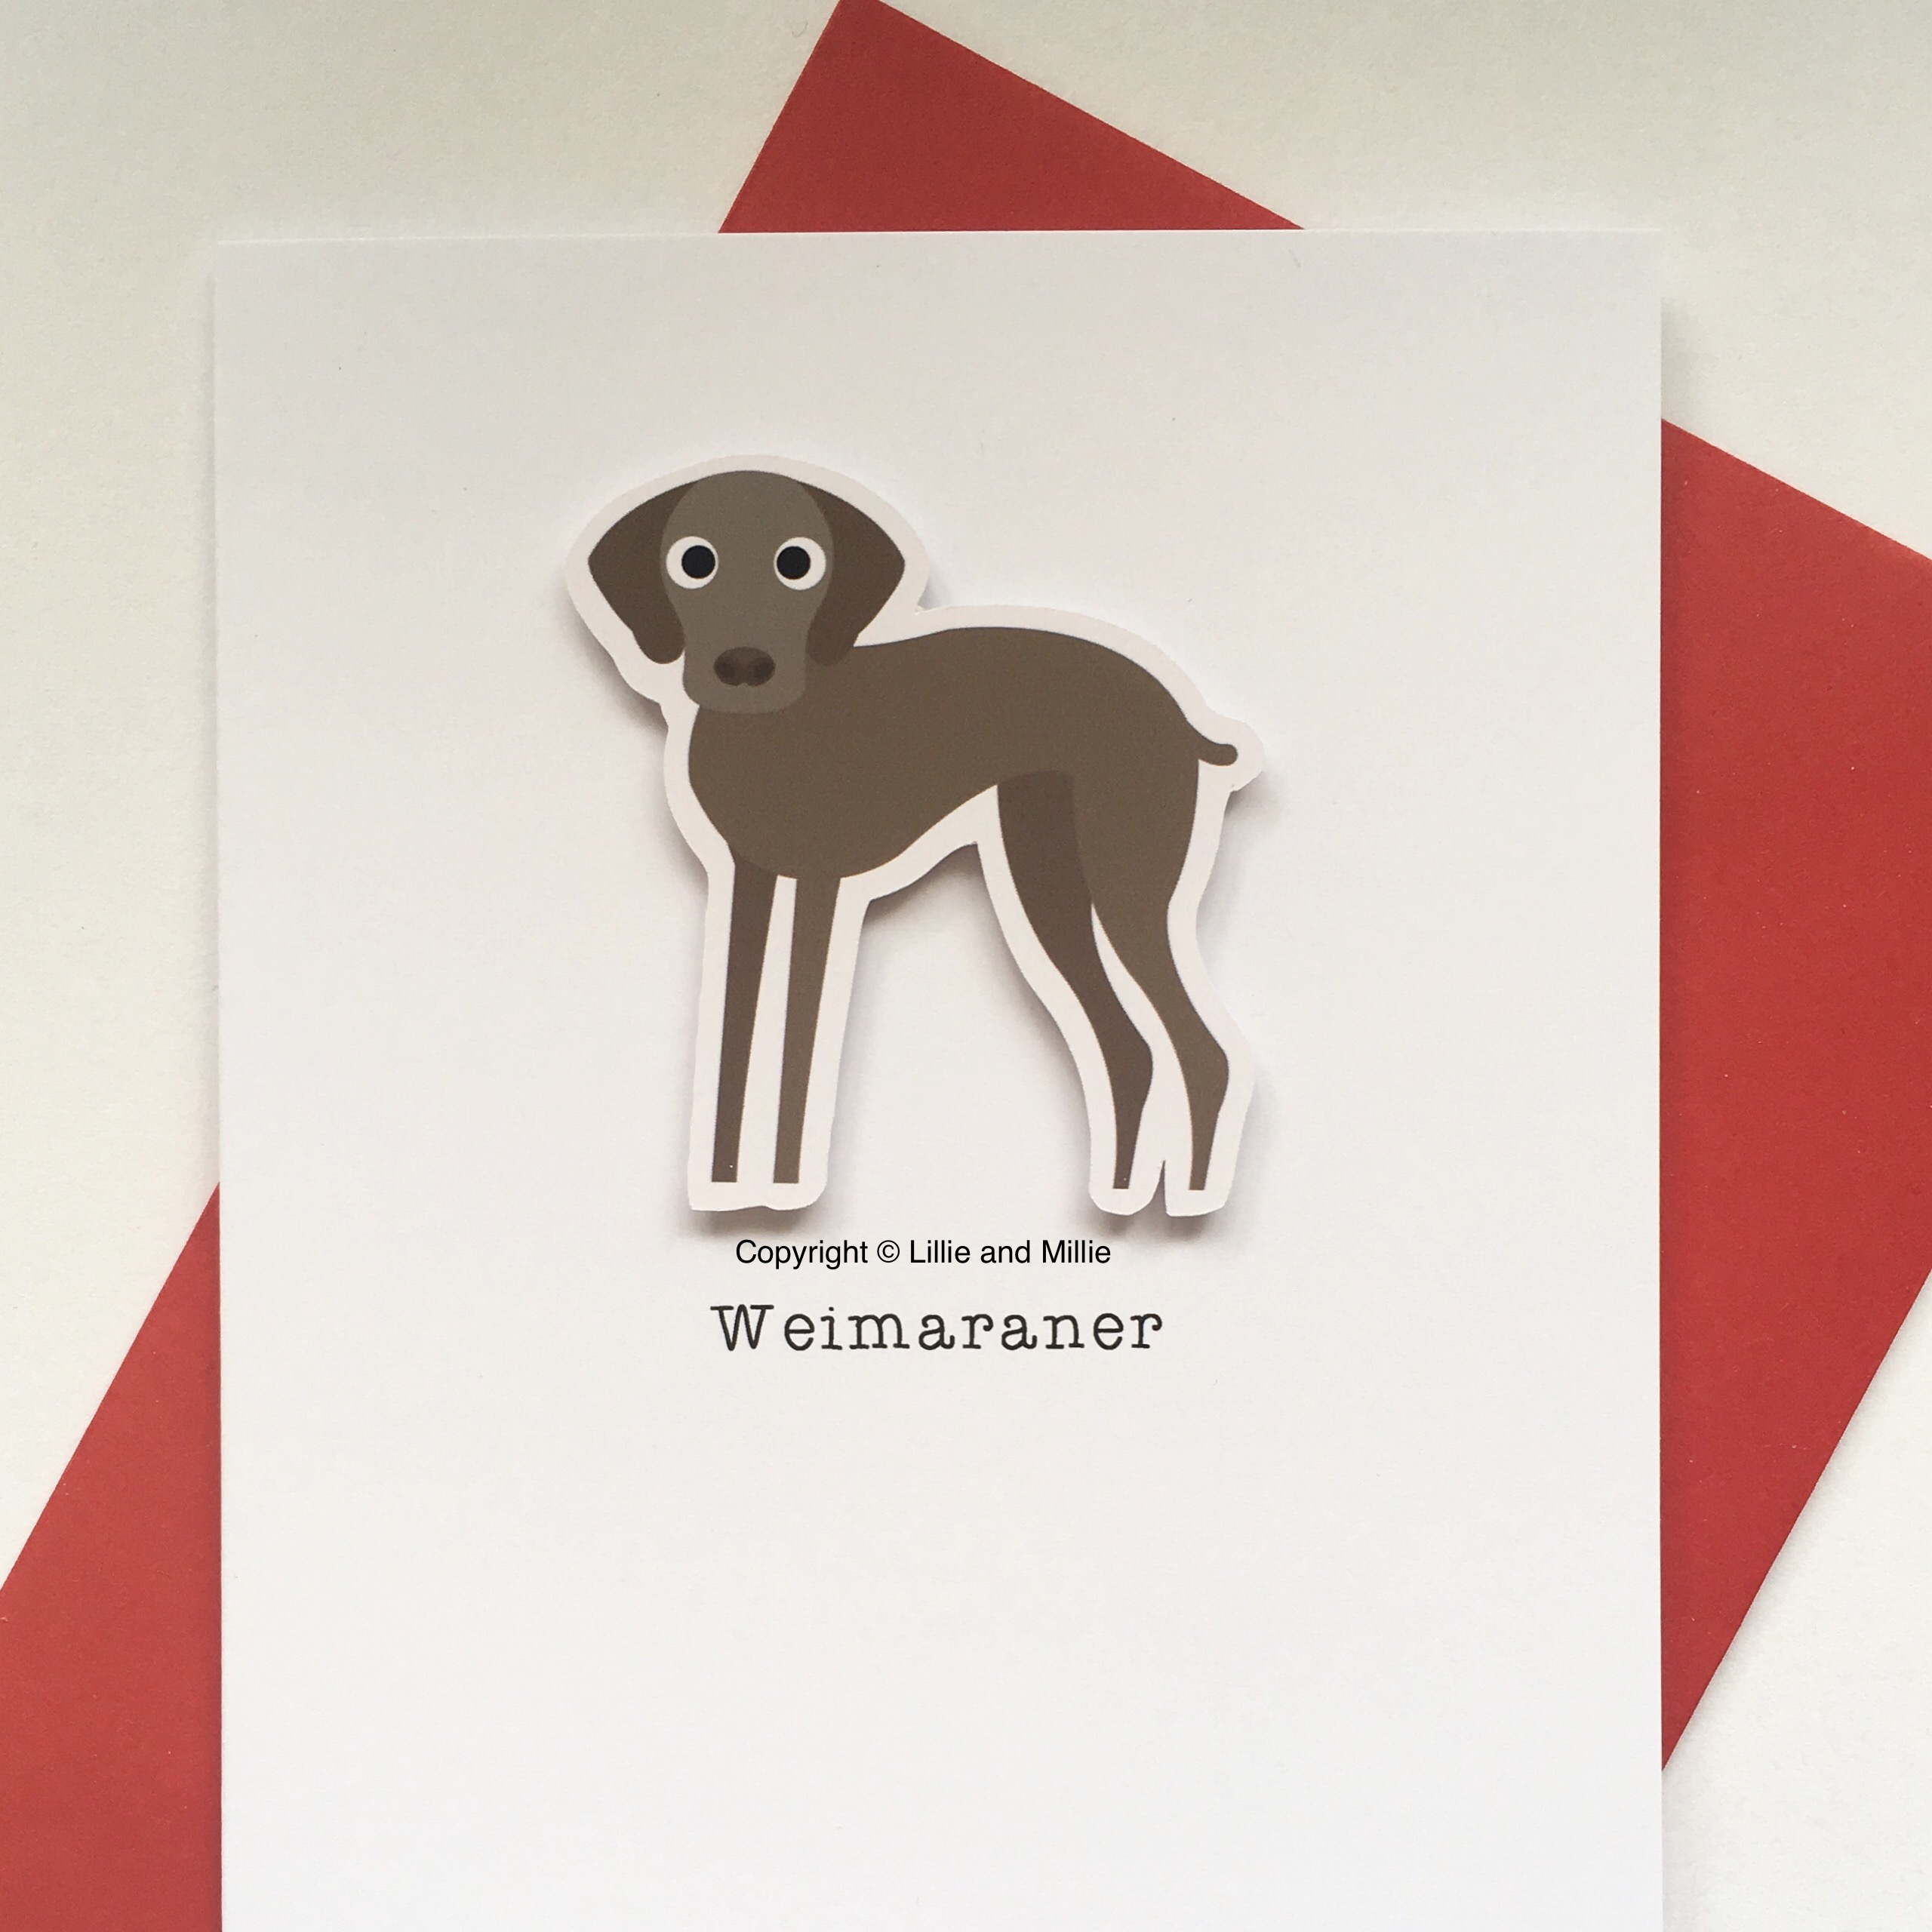 Cute and Cuddly Weimaraner Dog Greetings Card